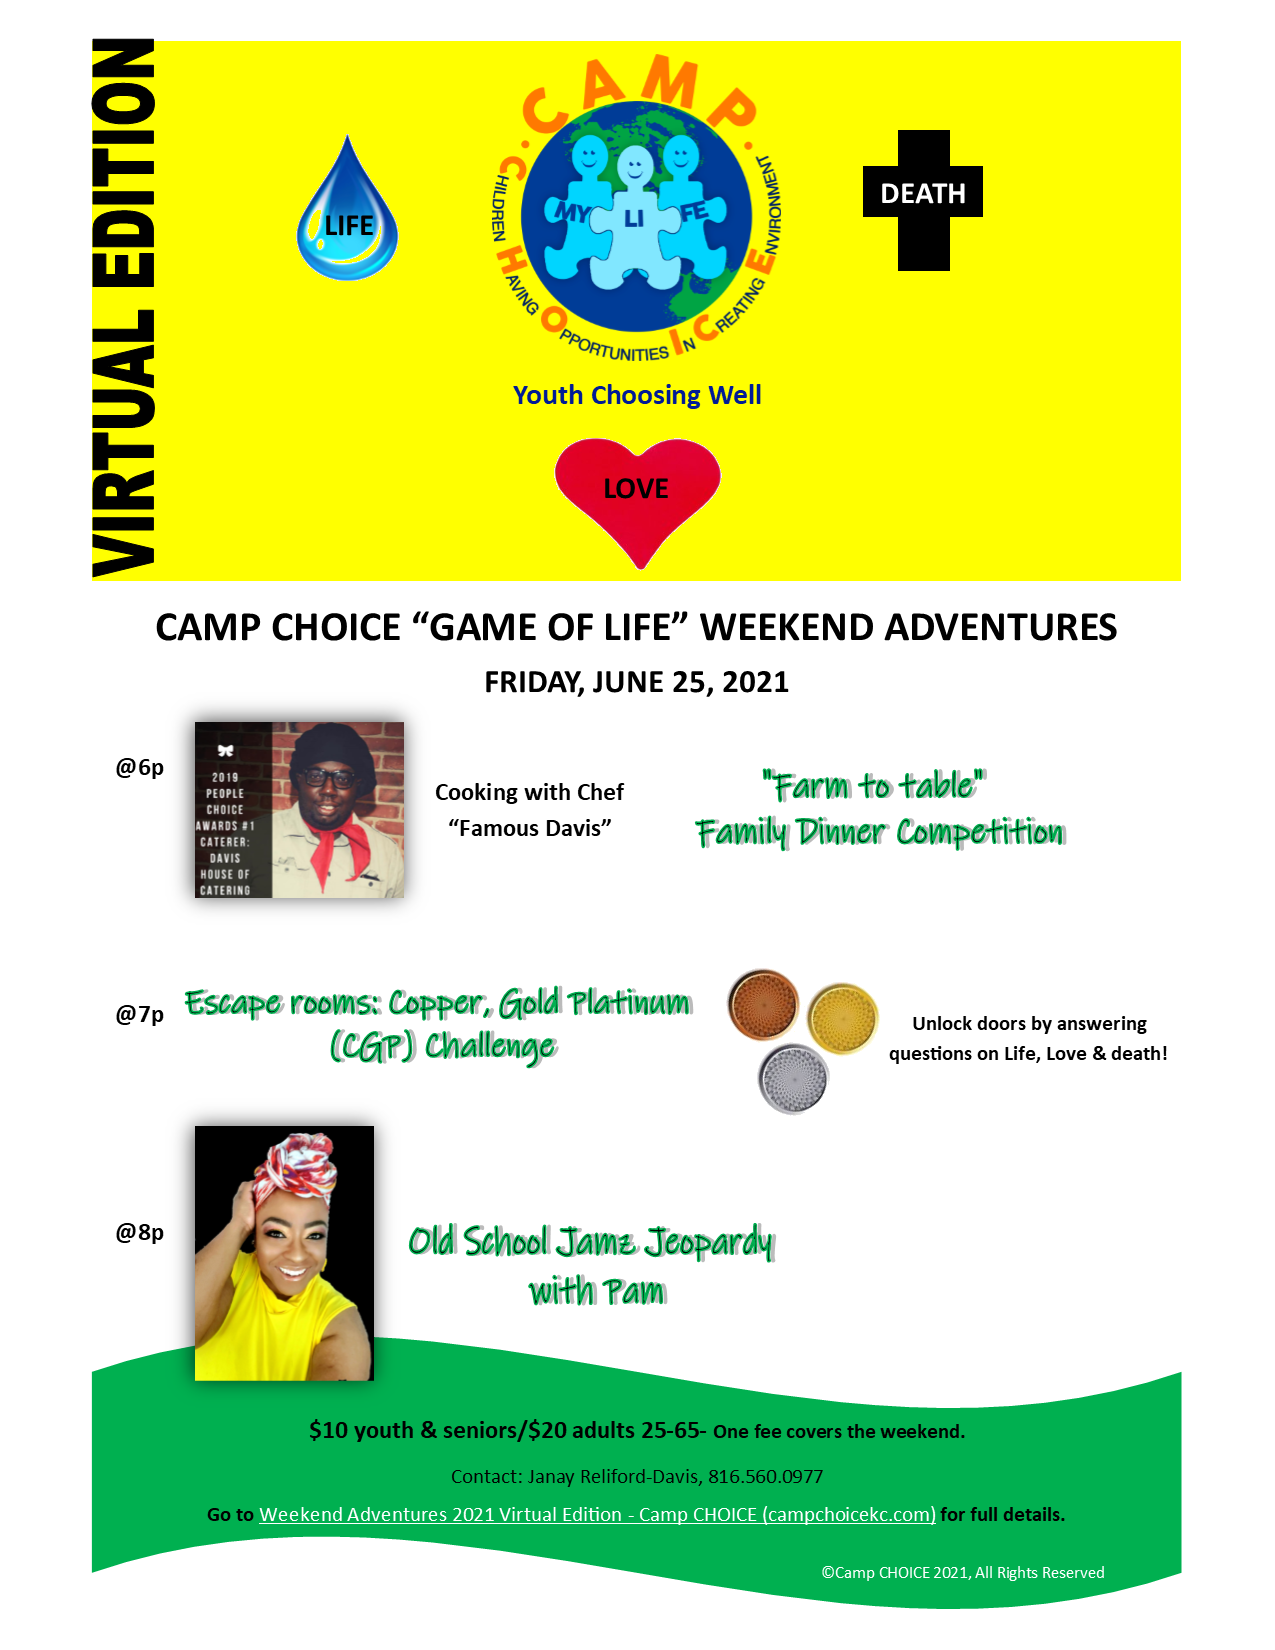 Camp CHOICE Life, Love, Death Cooking, CGP Competitions